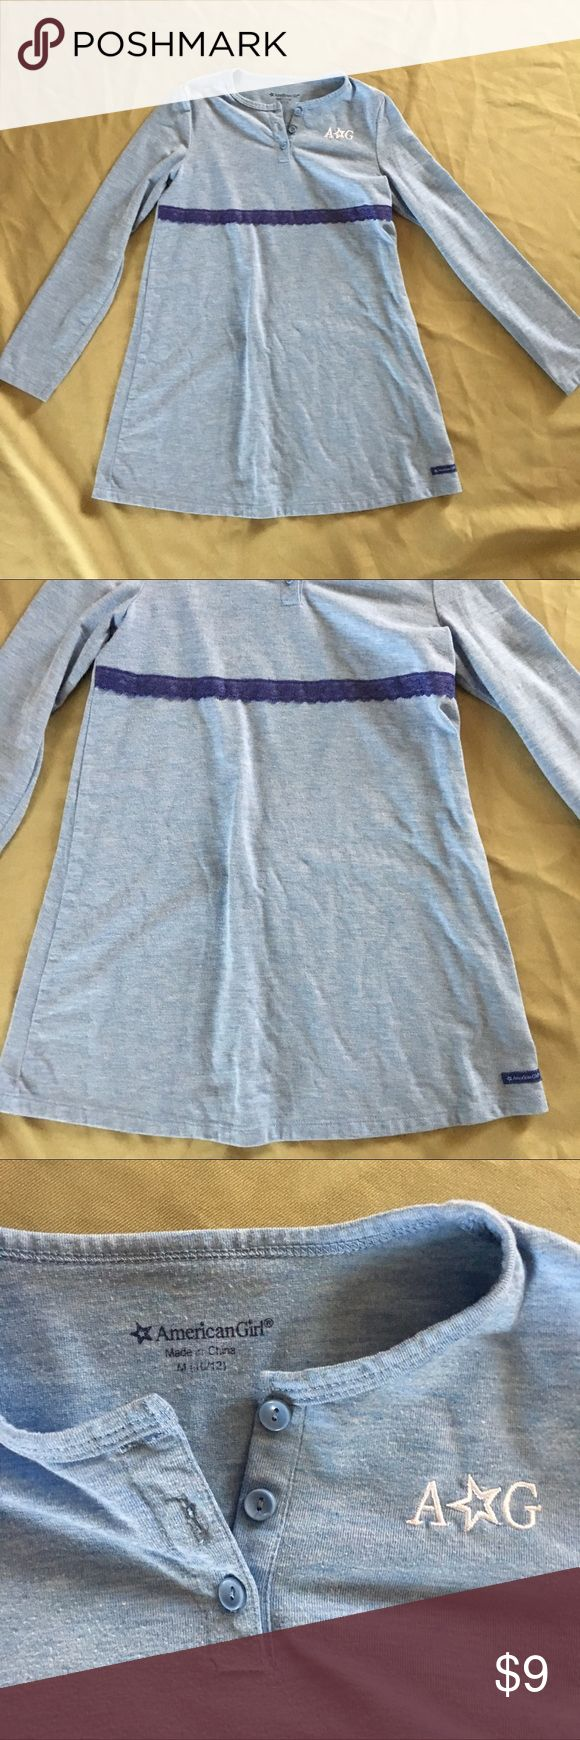 """American Girl Tunic Dress Girls Medium 10 12 Total length measures apx. 26"""". Minimal pilling from normal wash wear. Price firm unless bundled! American Girl Dresses Casual"""